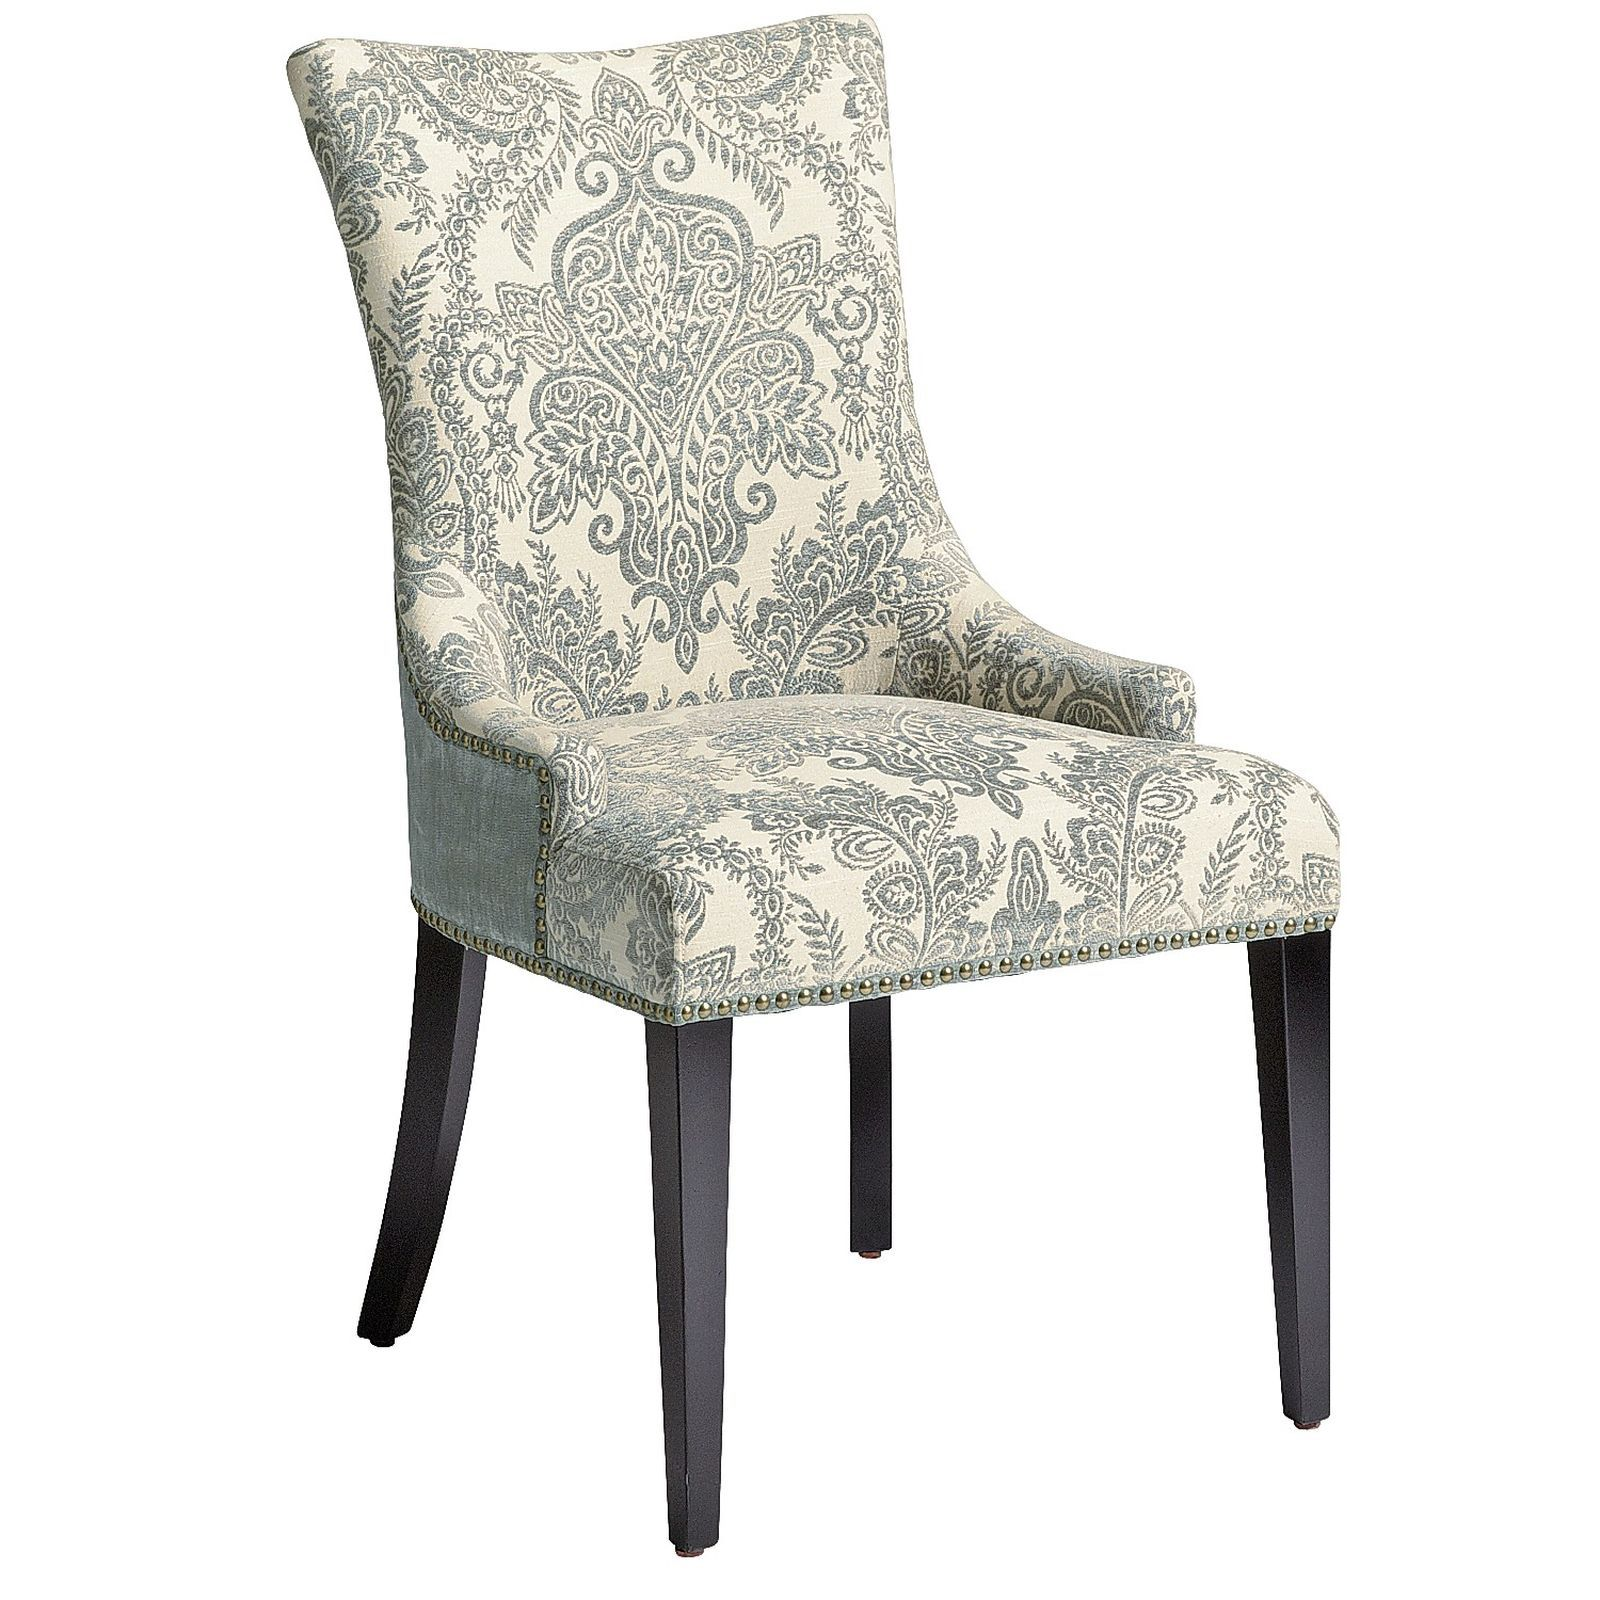 Pier 1 Imports Adelle Smoke Blue Dining Chair